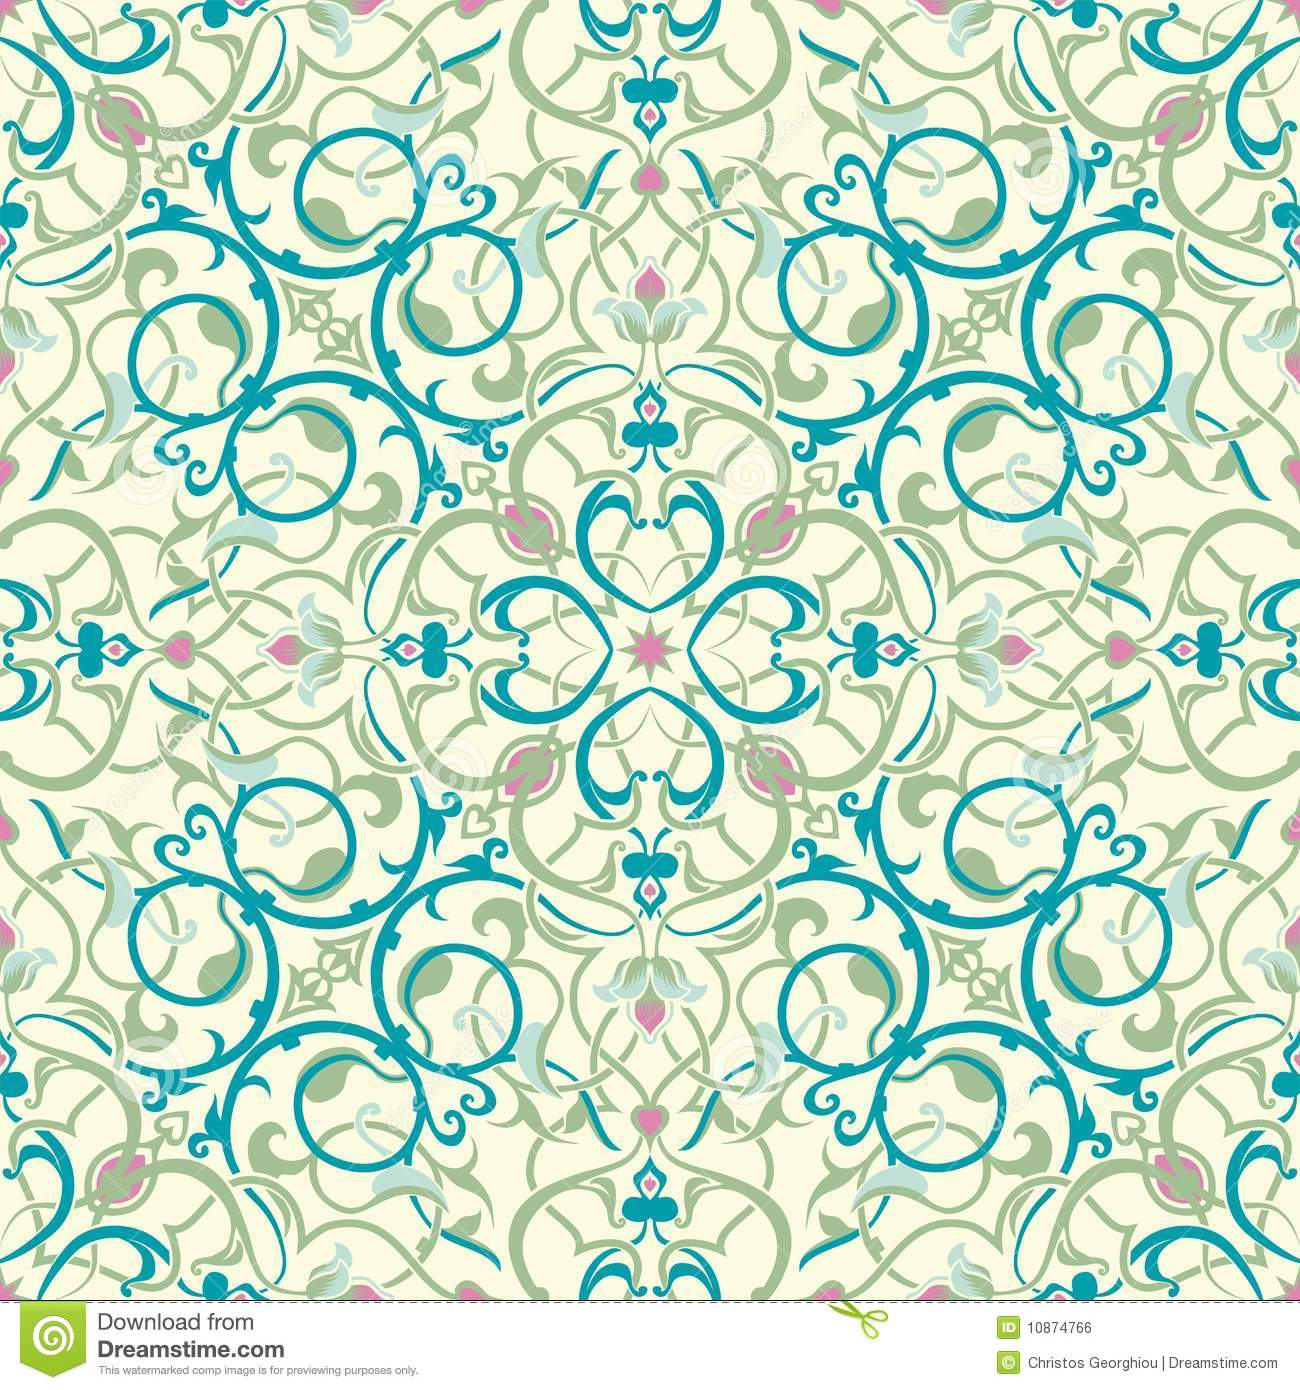 Middle Eastern Inspired Seamless Tile Design Stock Vector ...